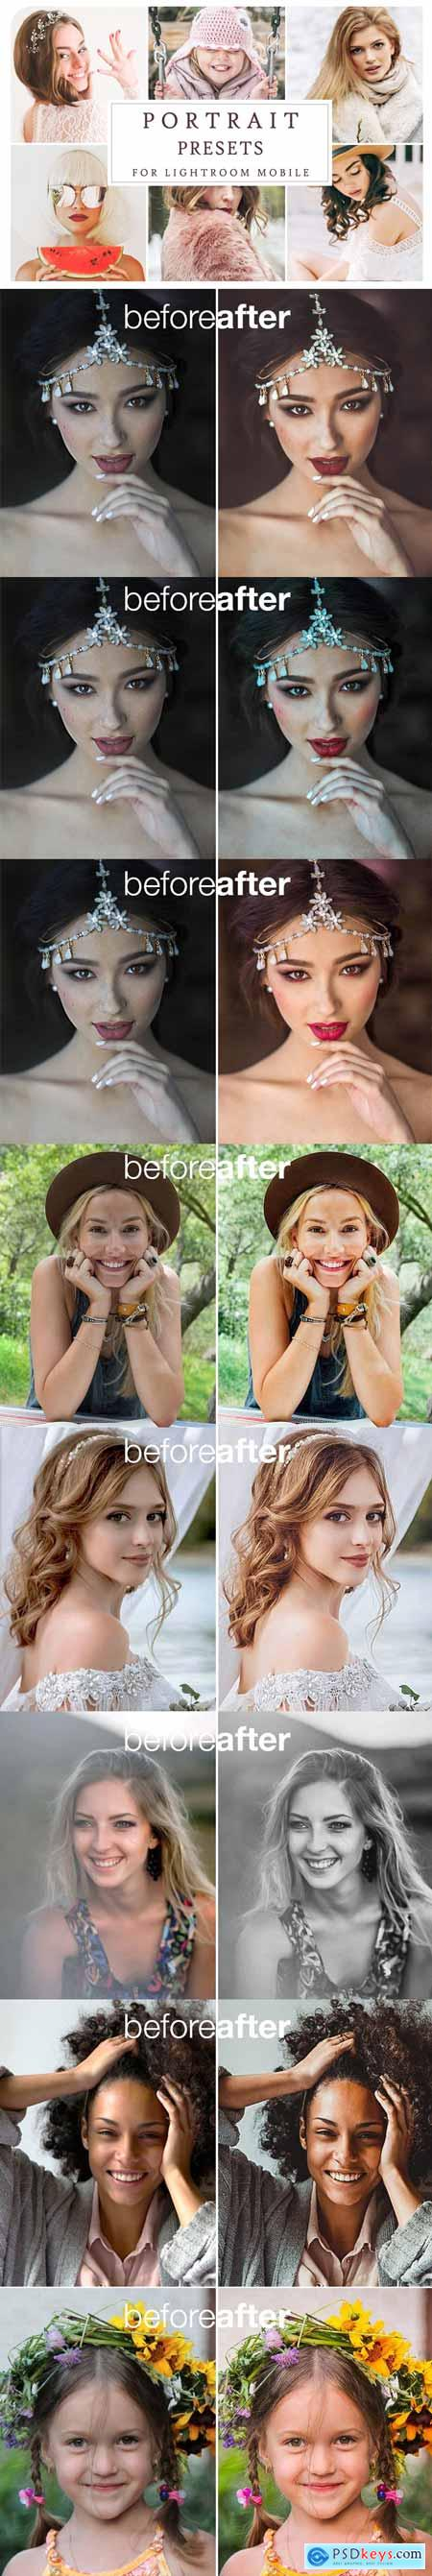 CreativeMarket Lightroom Mobile PORTRAIT PRESETS